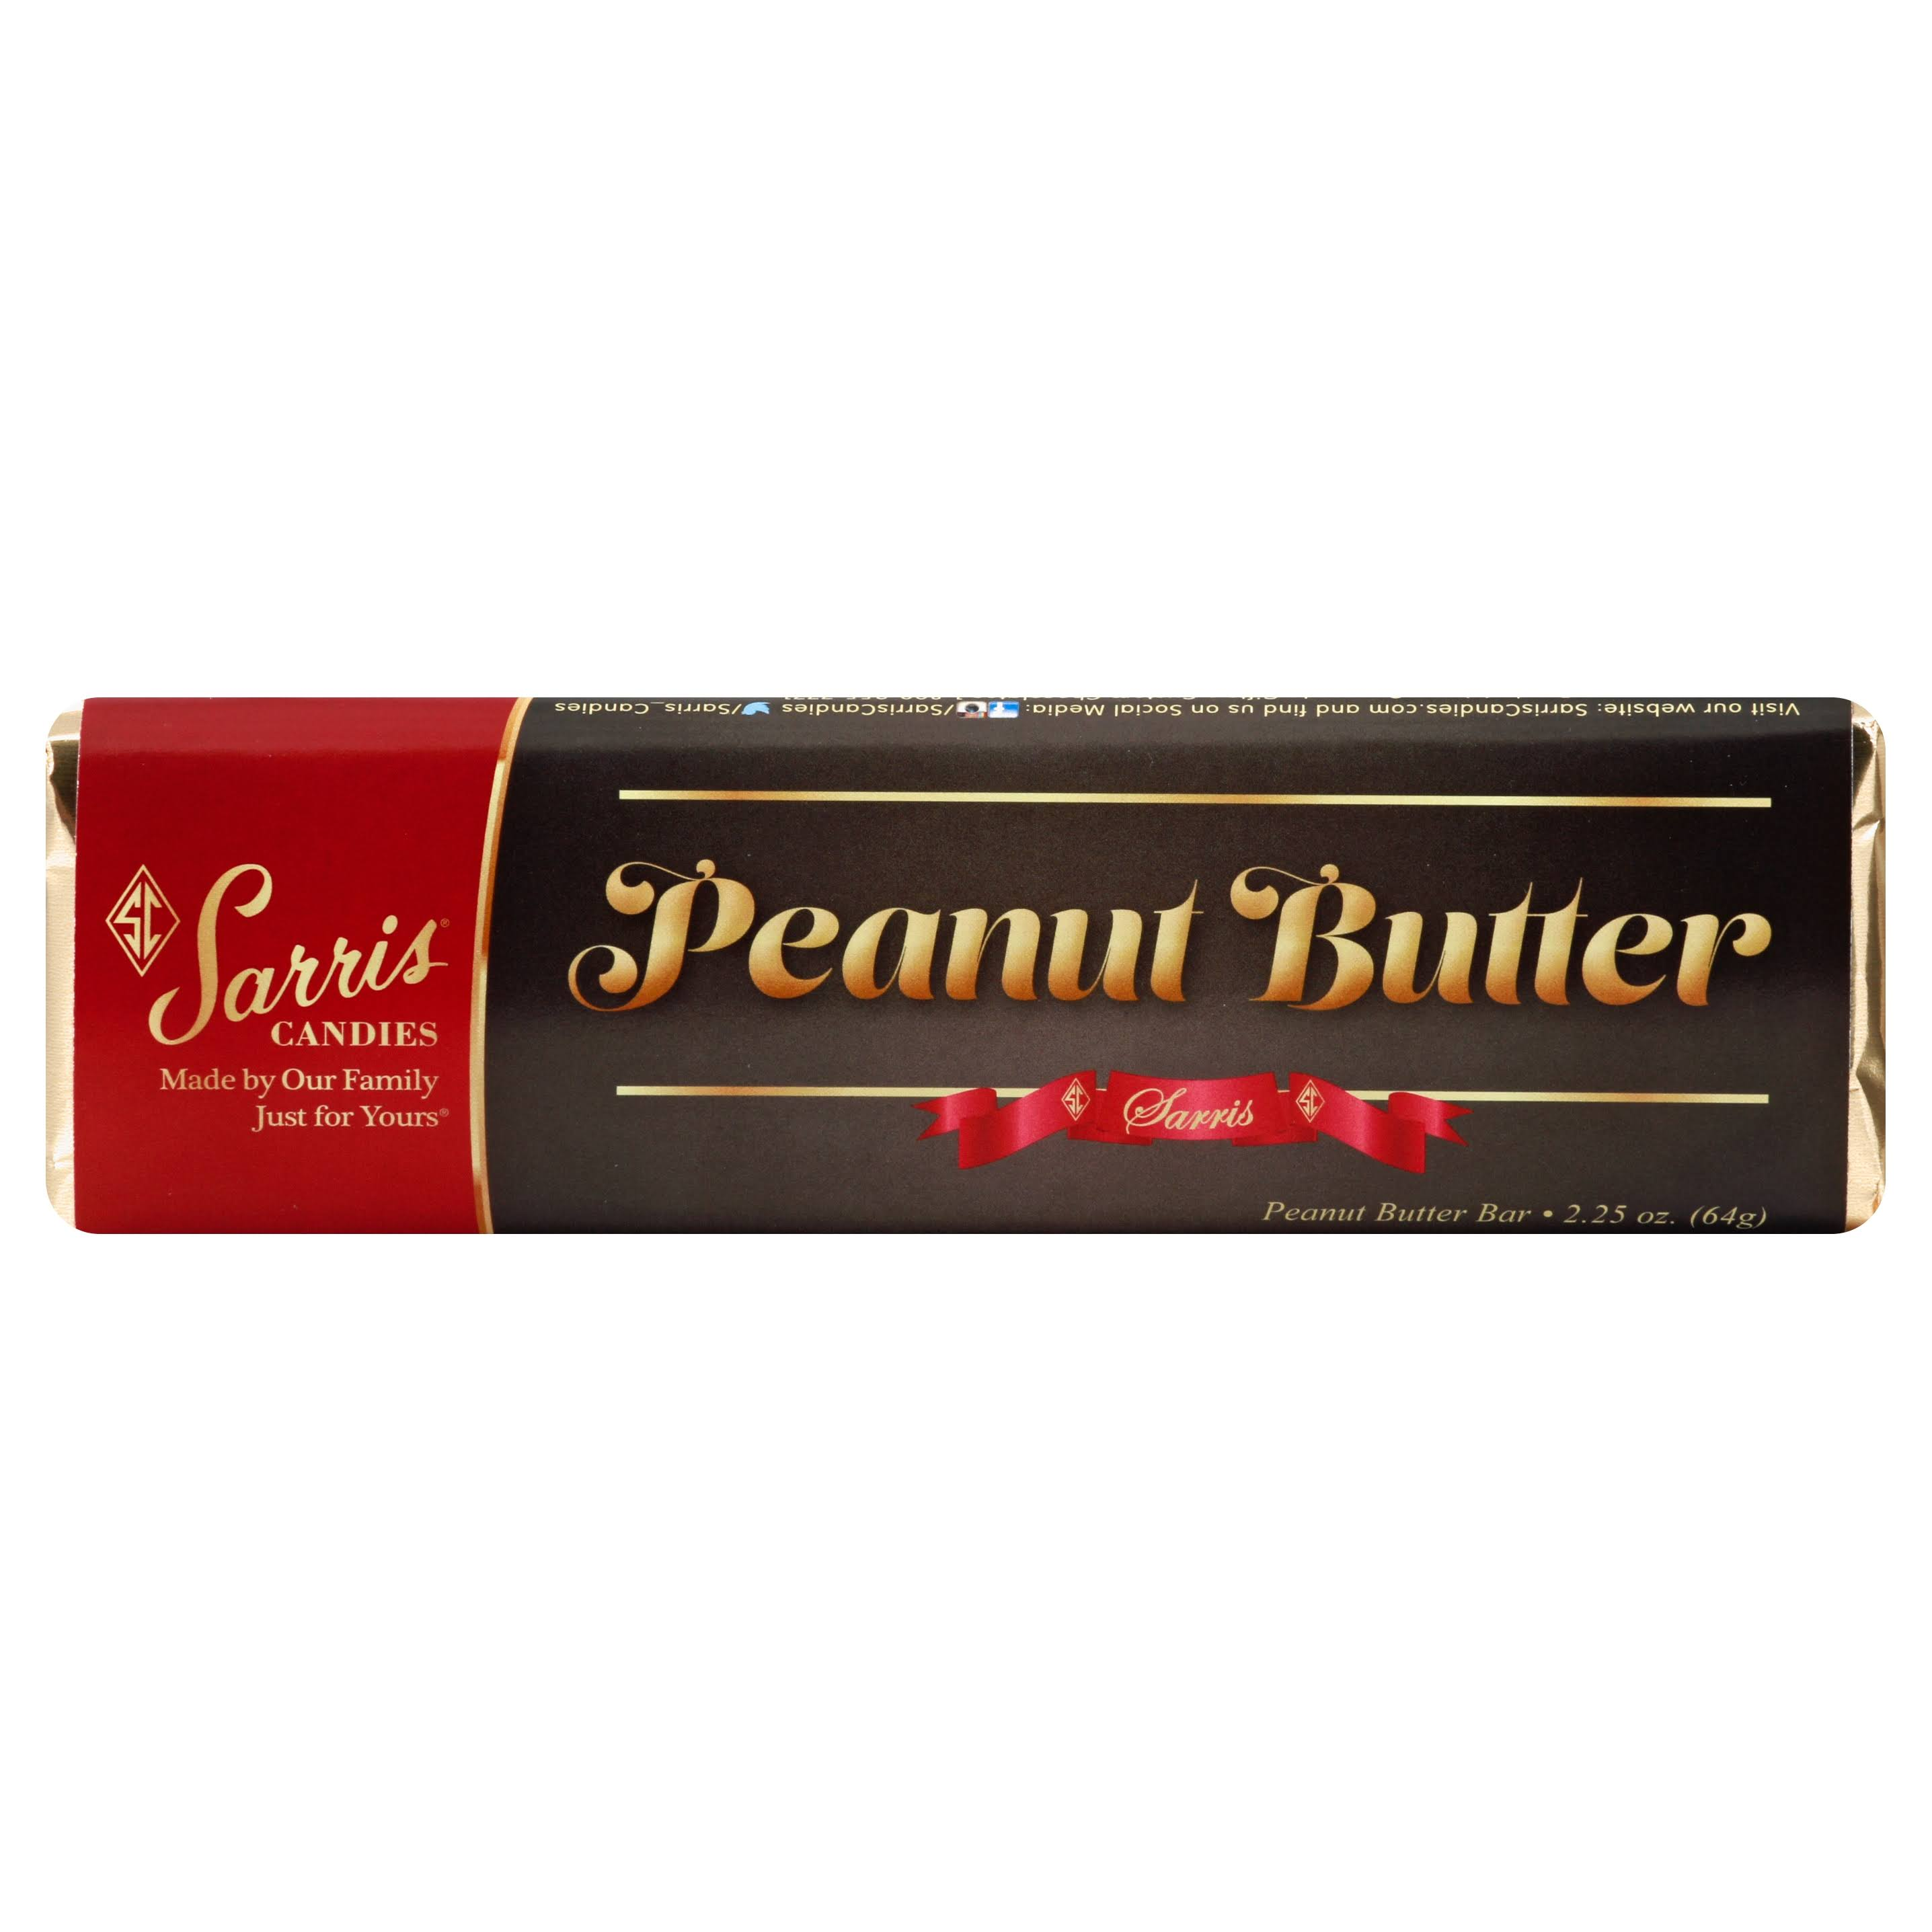 Sarris Candies Peanut Butter Bar - 2.25 (64 g)